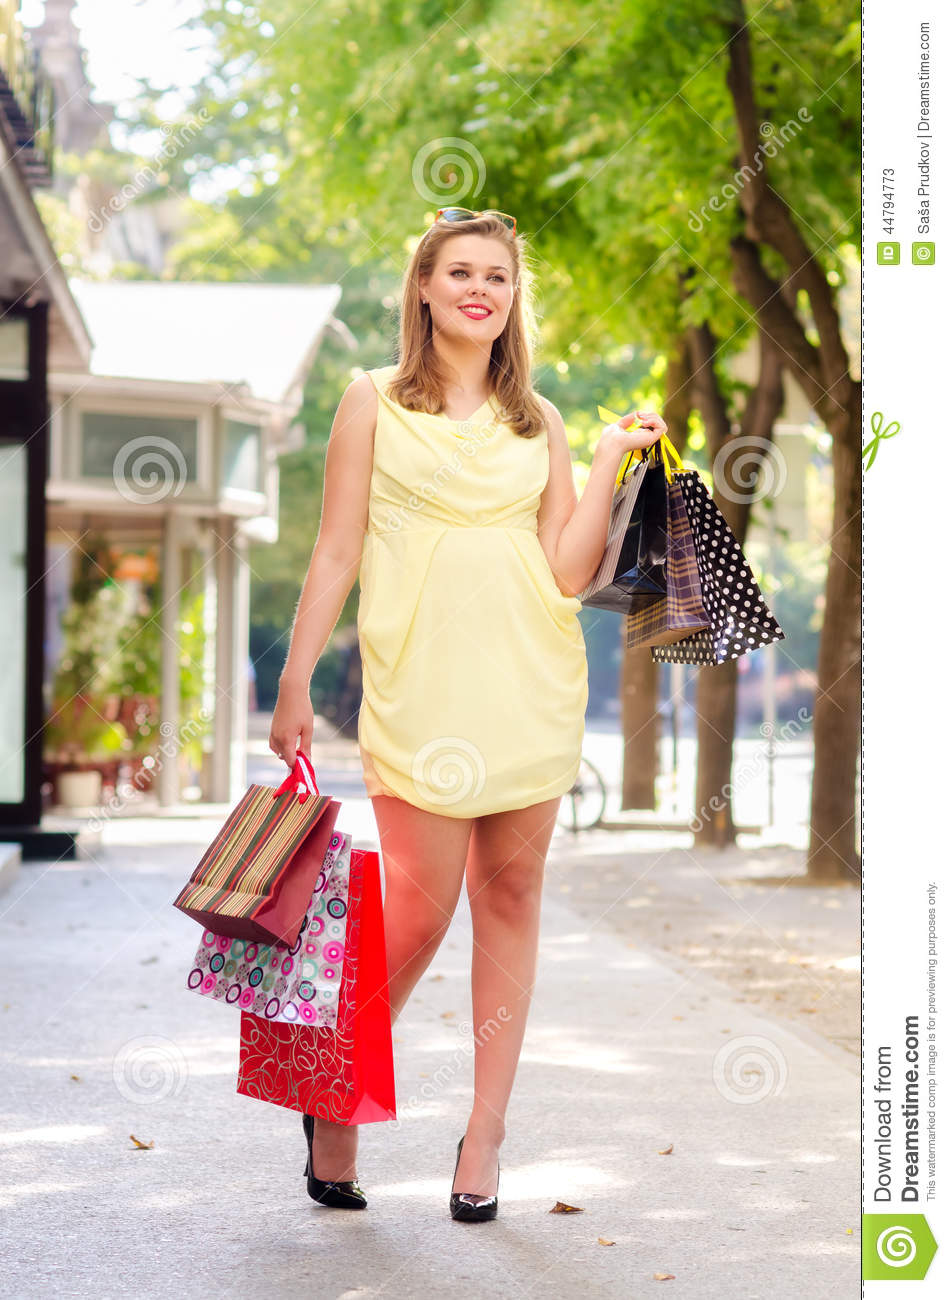 Beautiful urban girl walking down the street after shopping on sunny